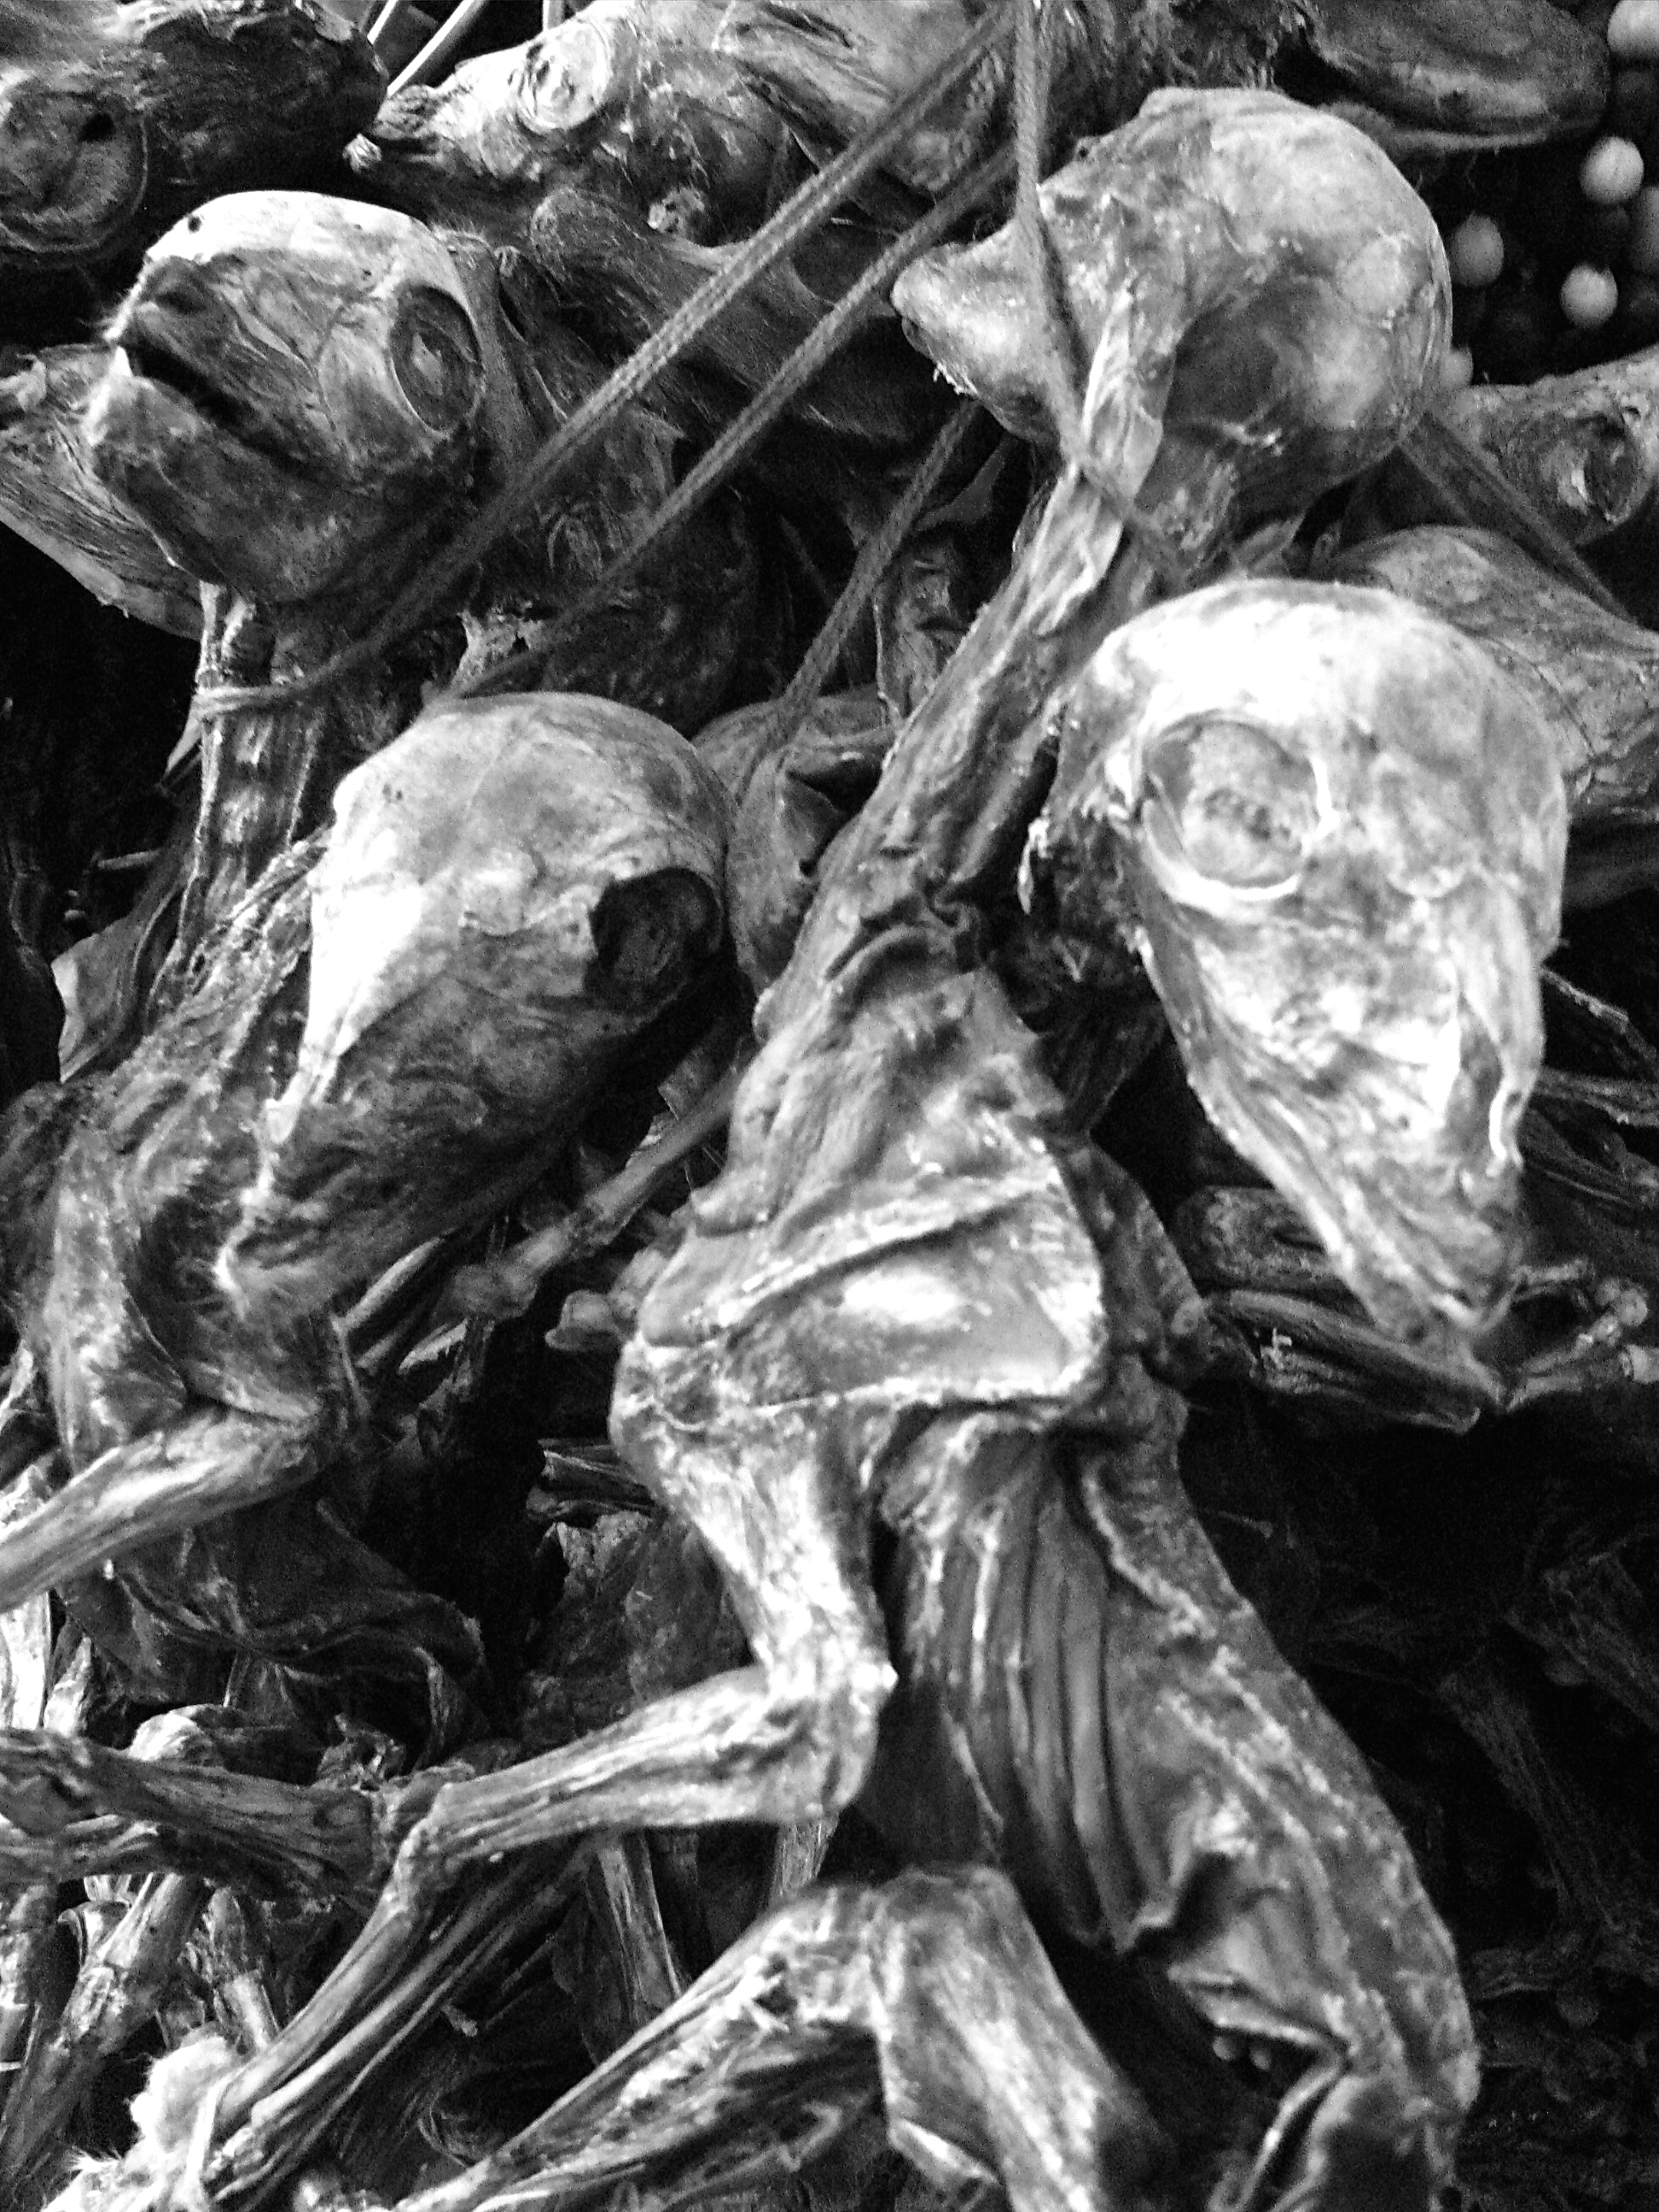 Llama Fetuses for sale in witches' market, La Paz